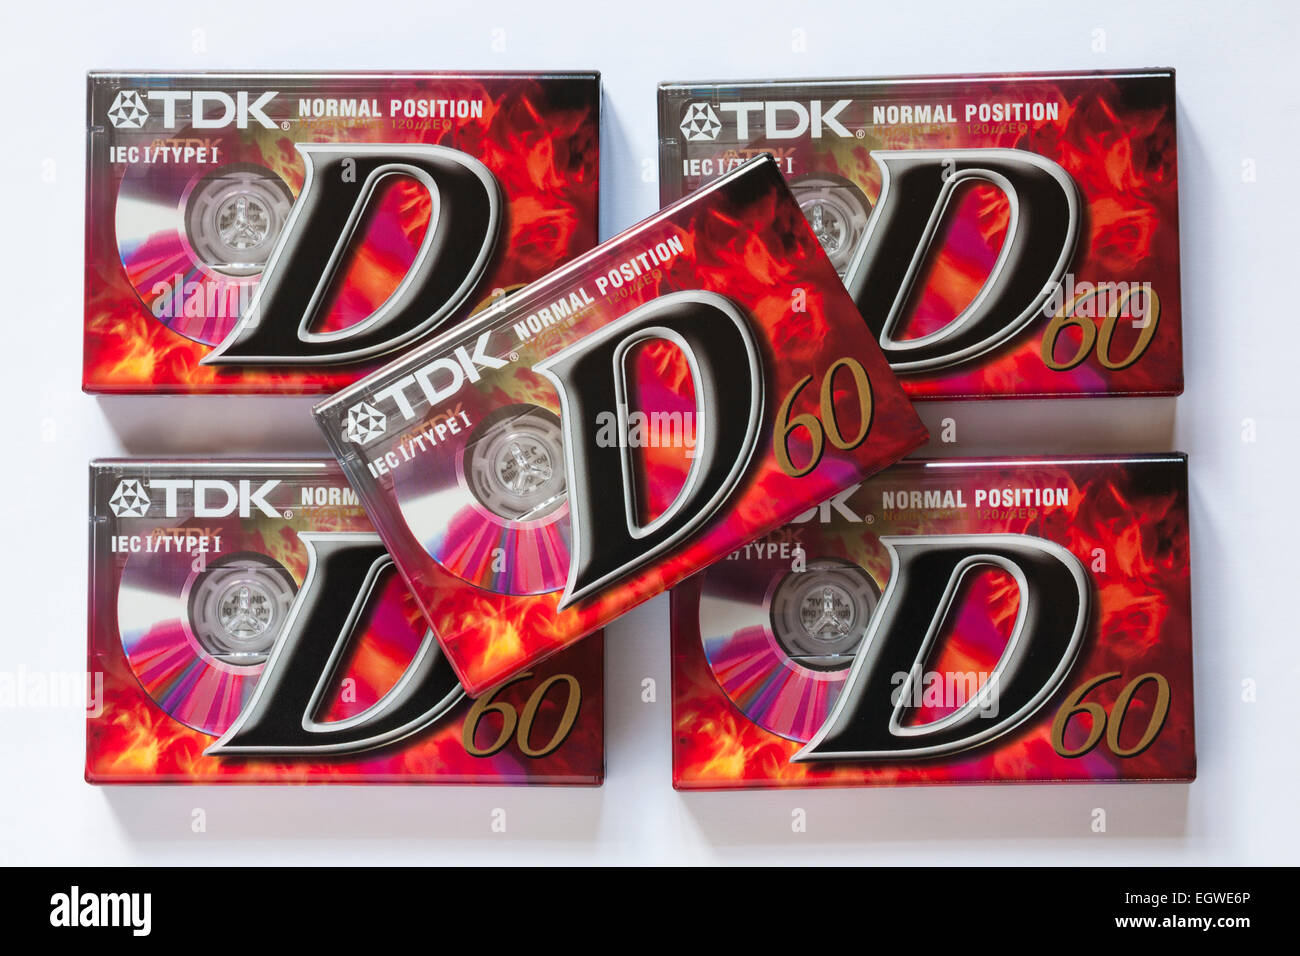 pile of new wrapped TDK normal position D60 audio cassette tapes set on white background - Stock Image